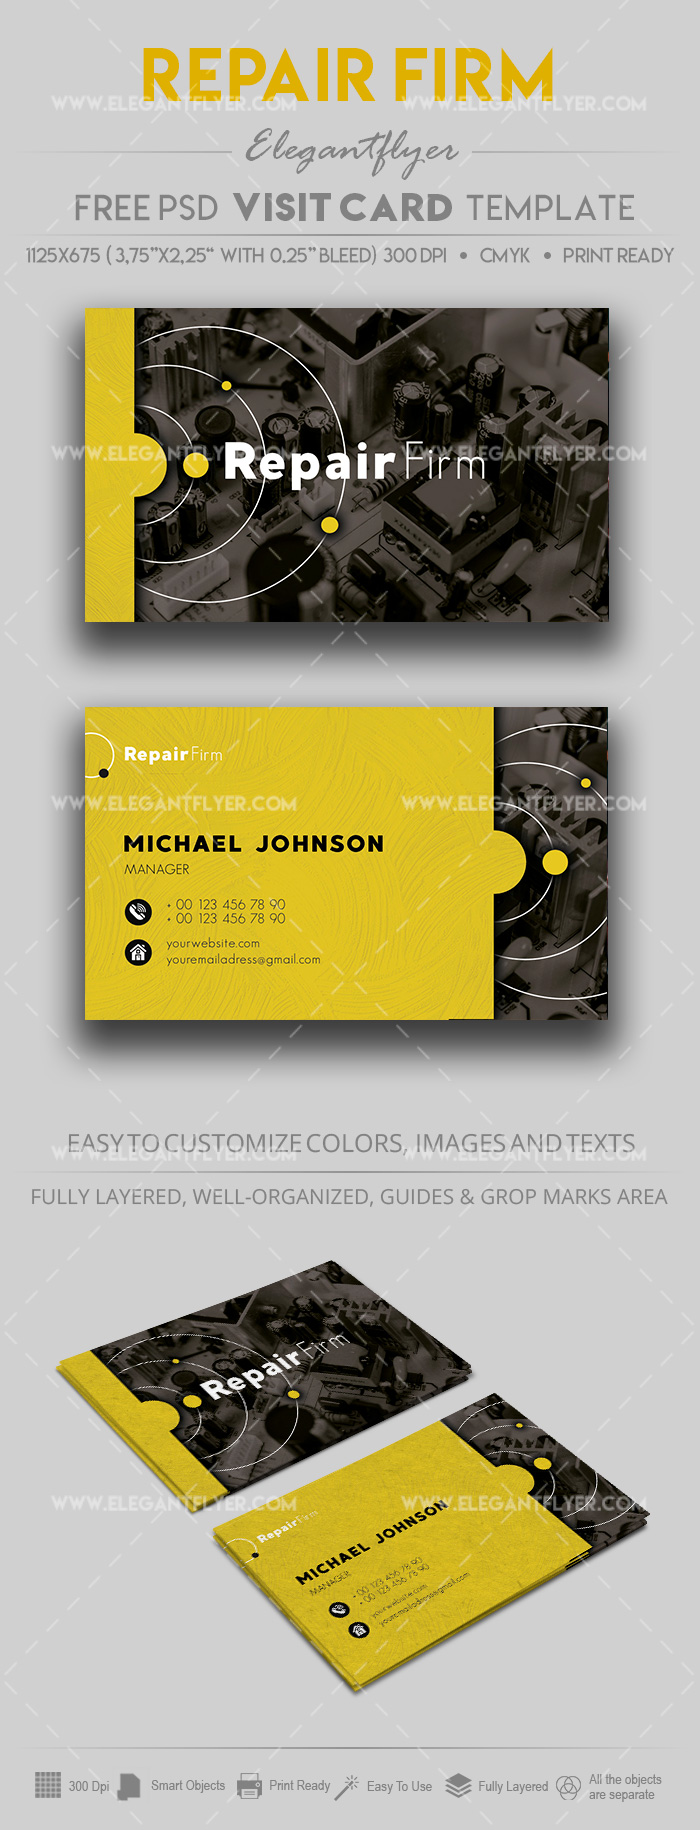 Repair of equipment – Free PSD Business Card Template